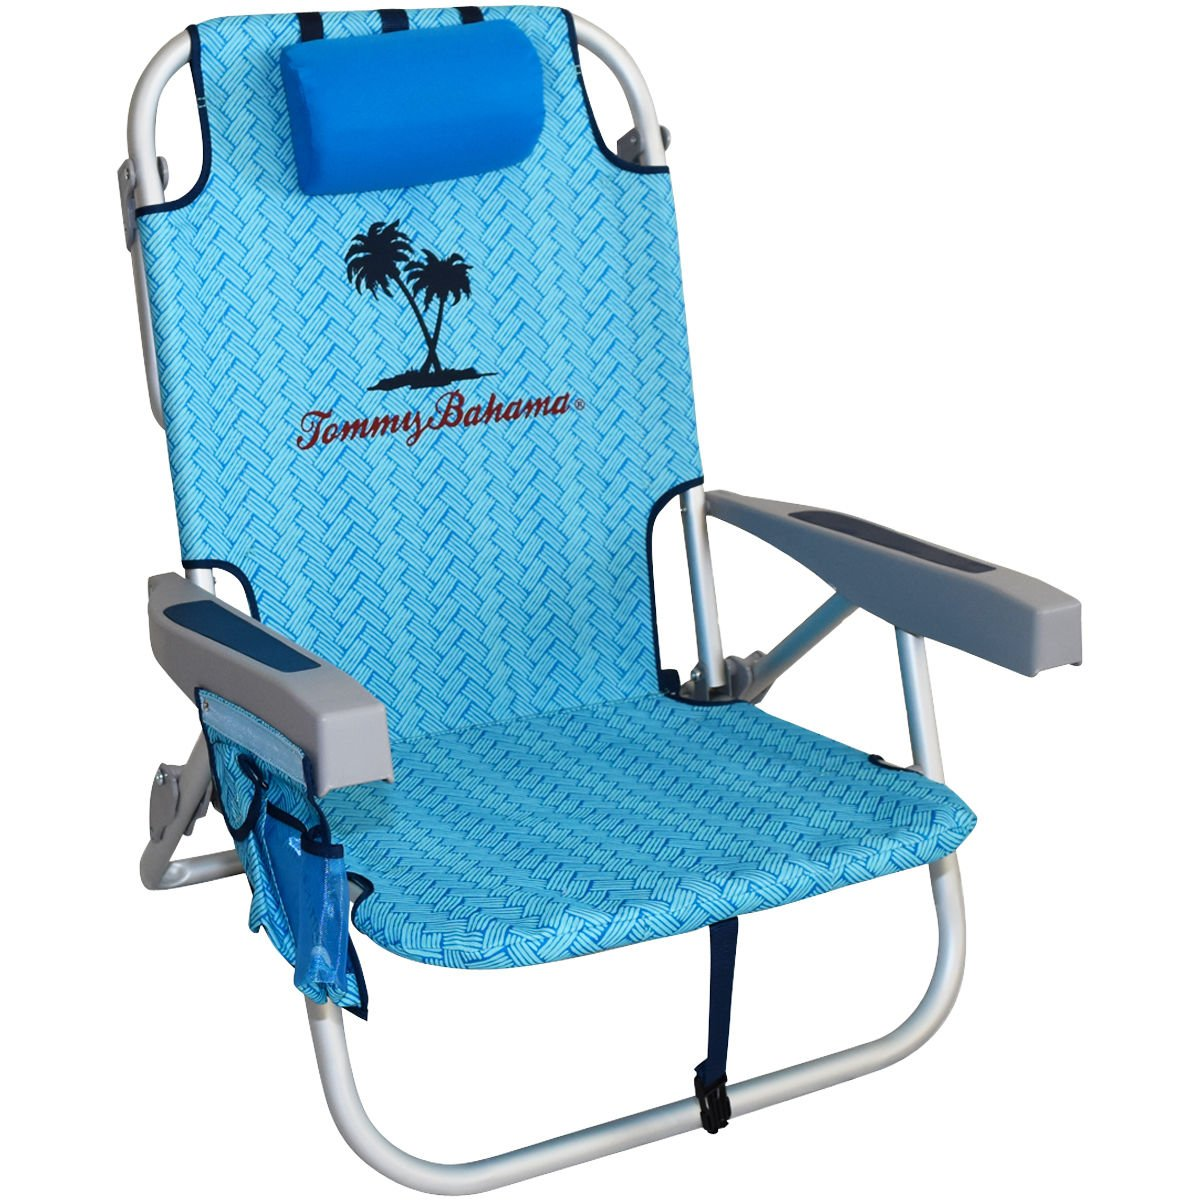 Charmant Amazon.com : Tommy Bahama Backpack Cooler Chair With Storage Pouch And  Towel Bar, Blue : Sports U0026 Outdoors